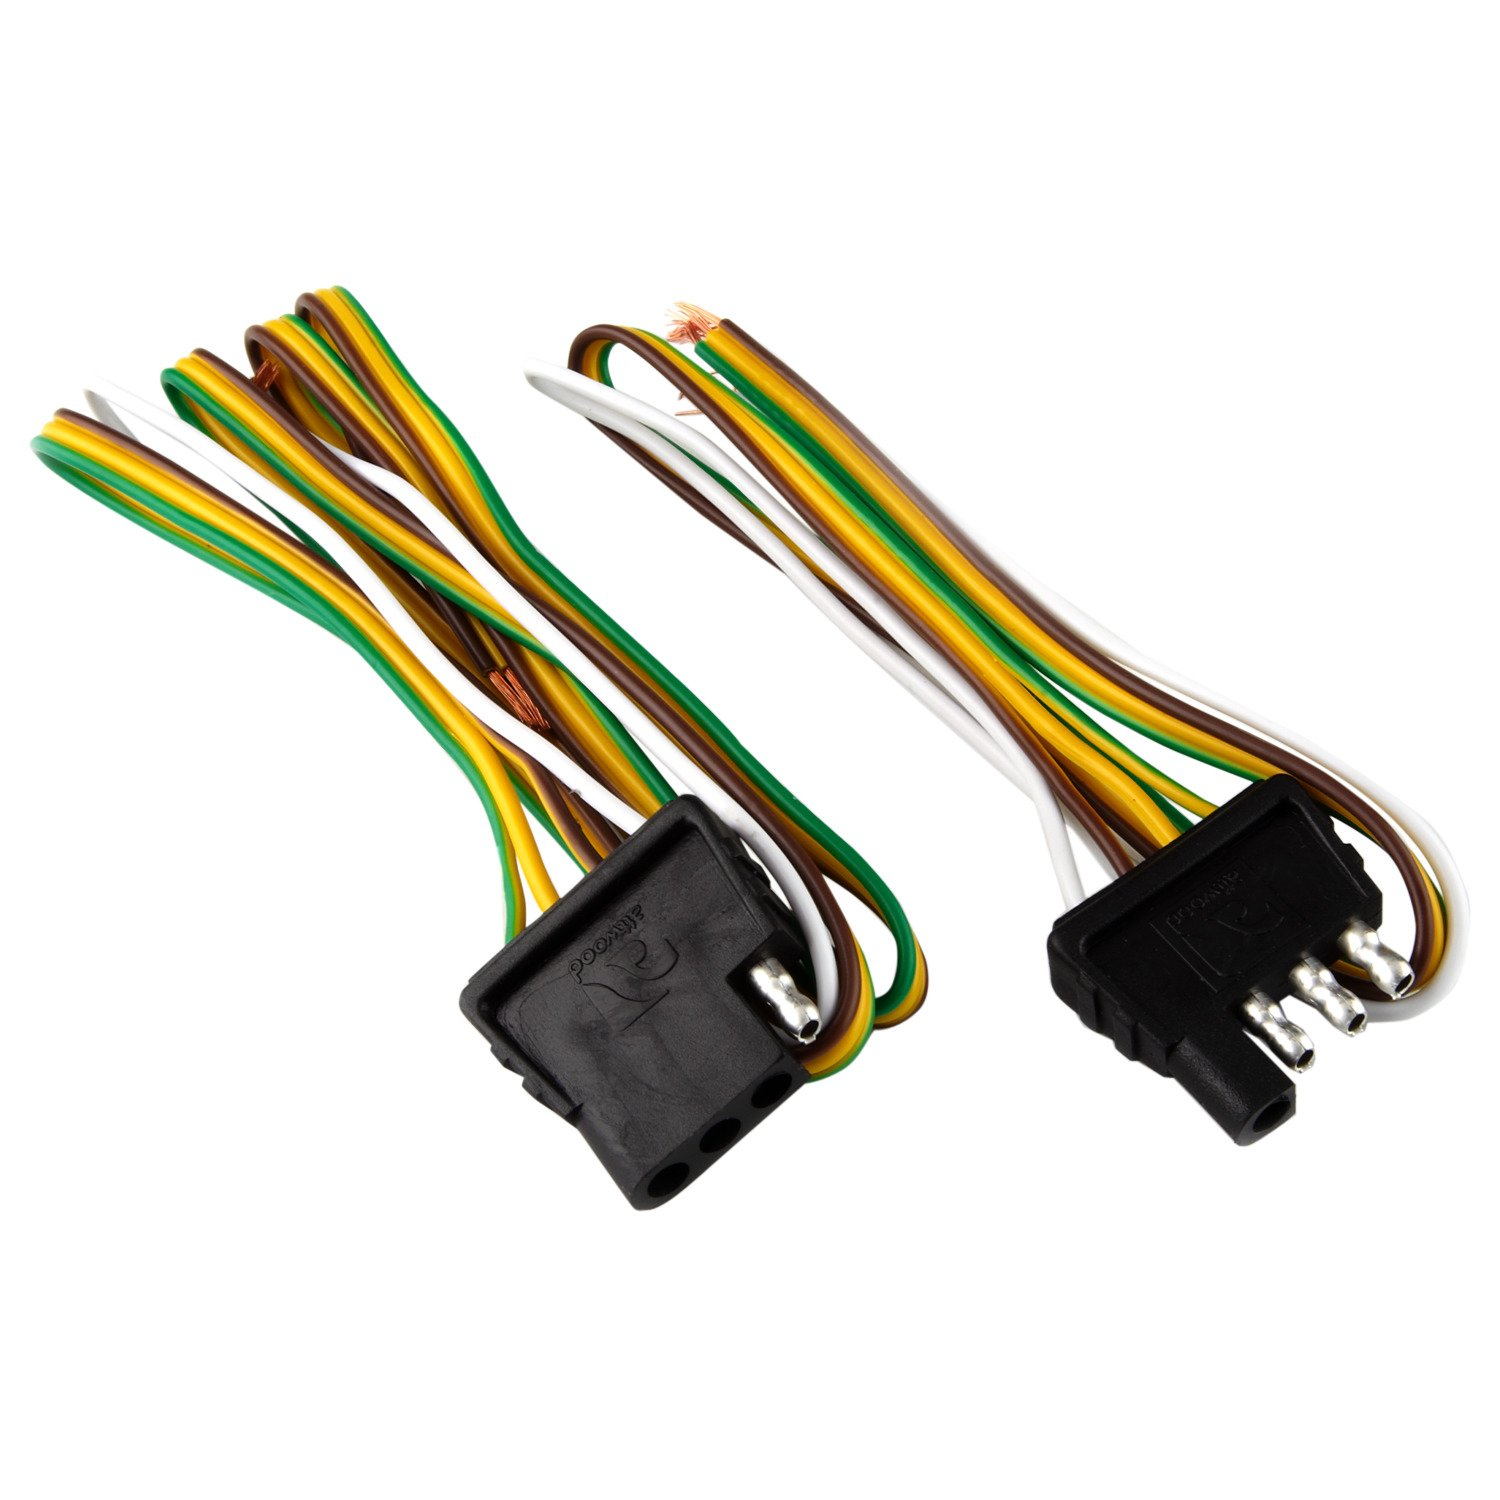 attwood 4 way flat wiring harness kit for vehicles and trailers 4 way flat wiring harness diagram 4 flat wiring harness [ 1500 x 1500 Pixel ]